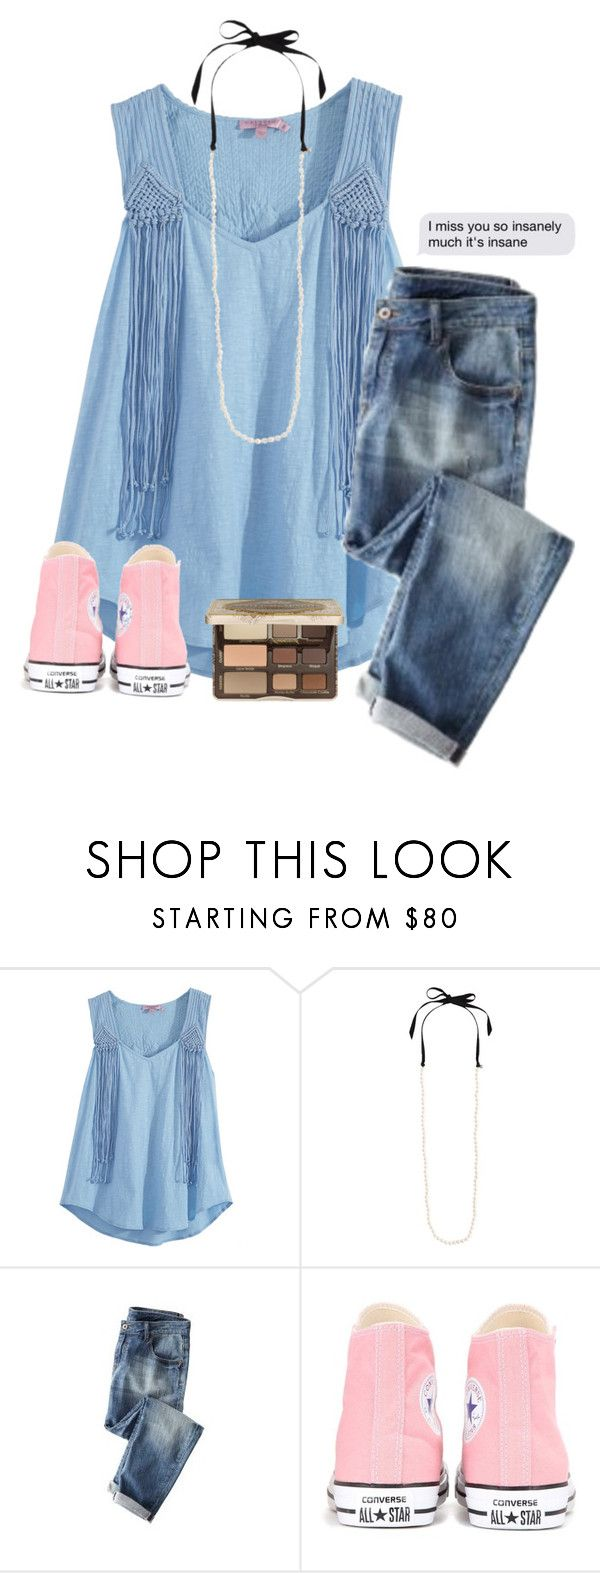 """""""Well this is something different"""" by savanahe ❤ liked on Polyvore featuring Calypso St. Barth, J.Crew, Wrap, Converse and Too Faced Cosmetics"""